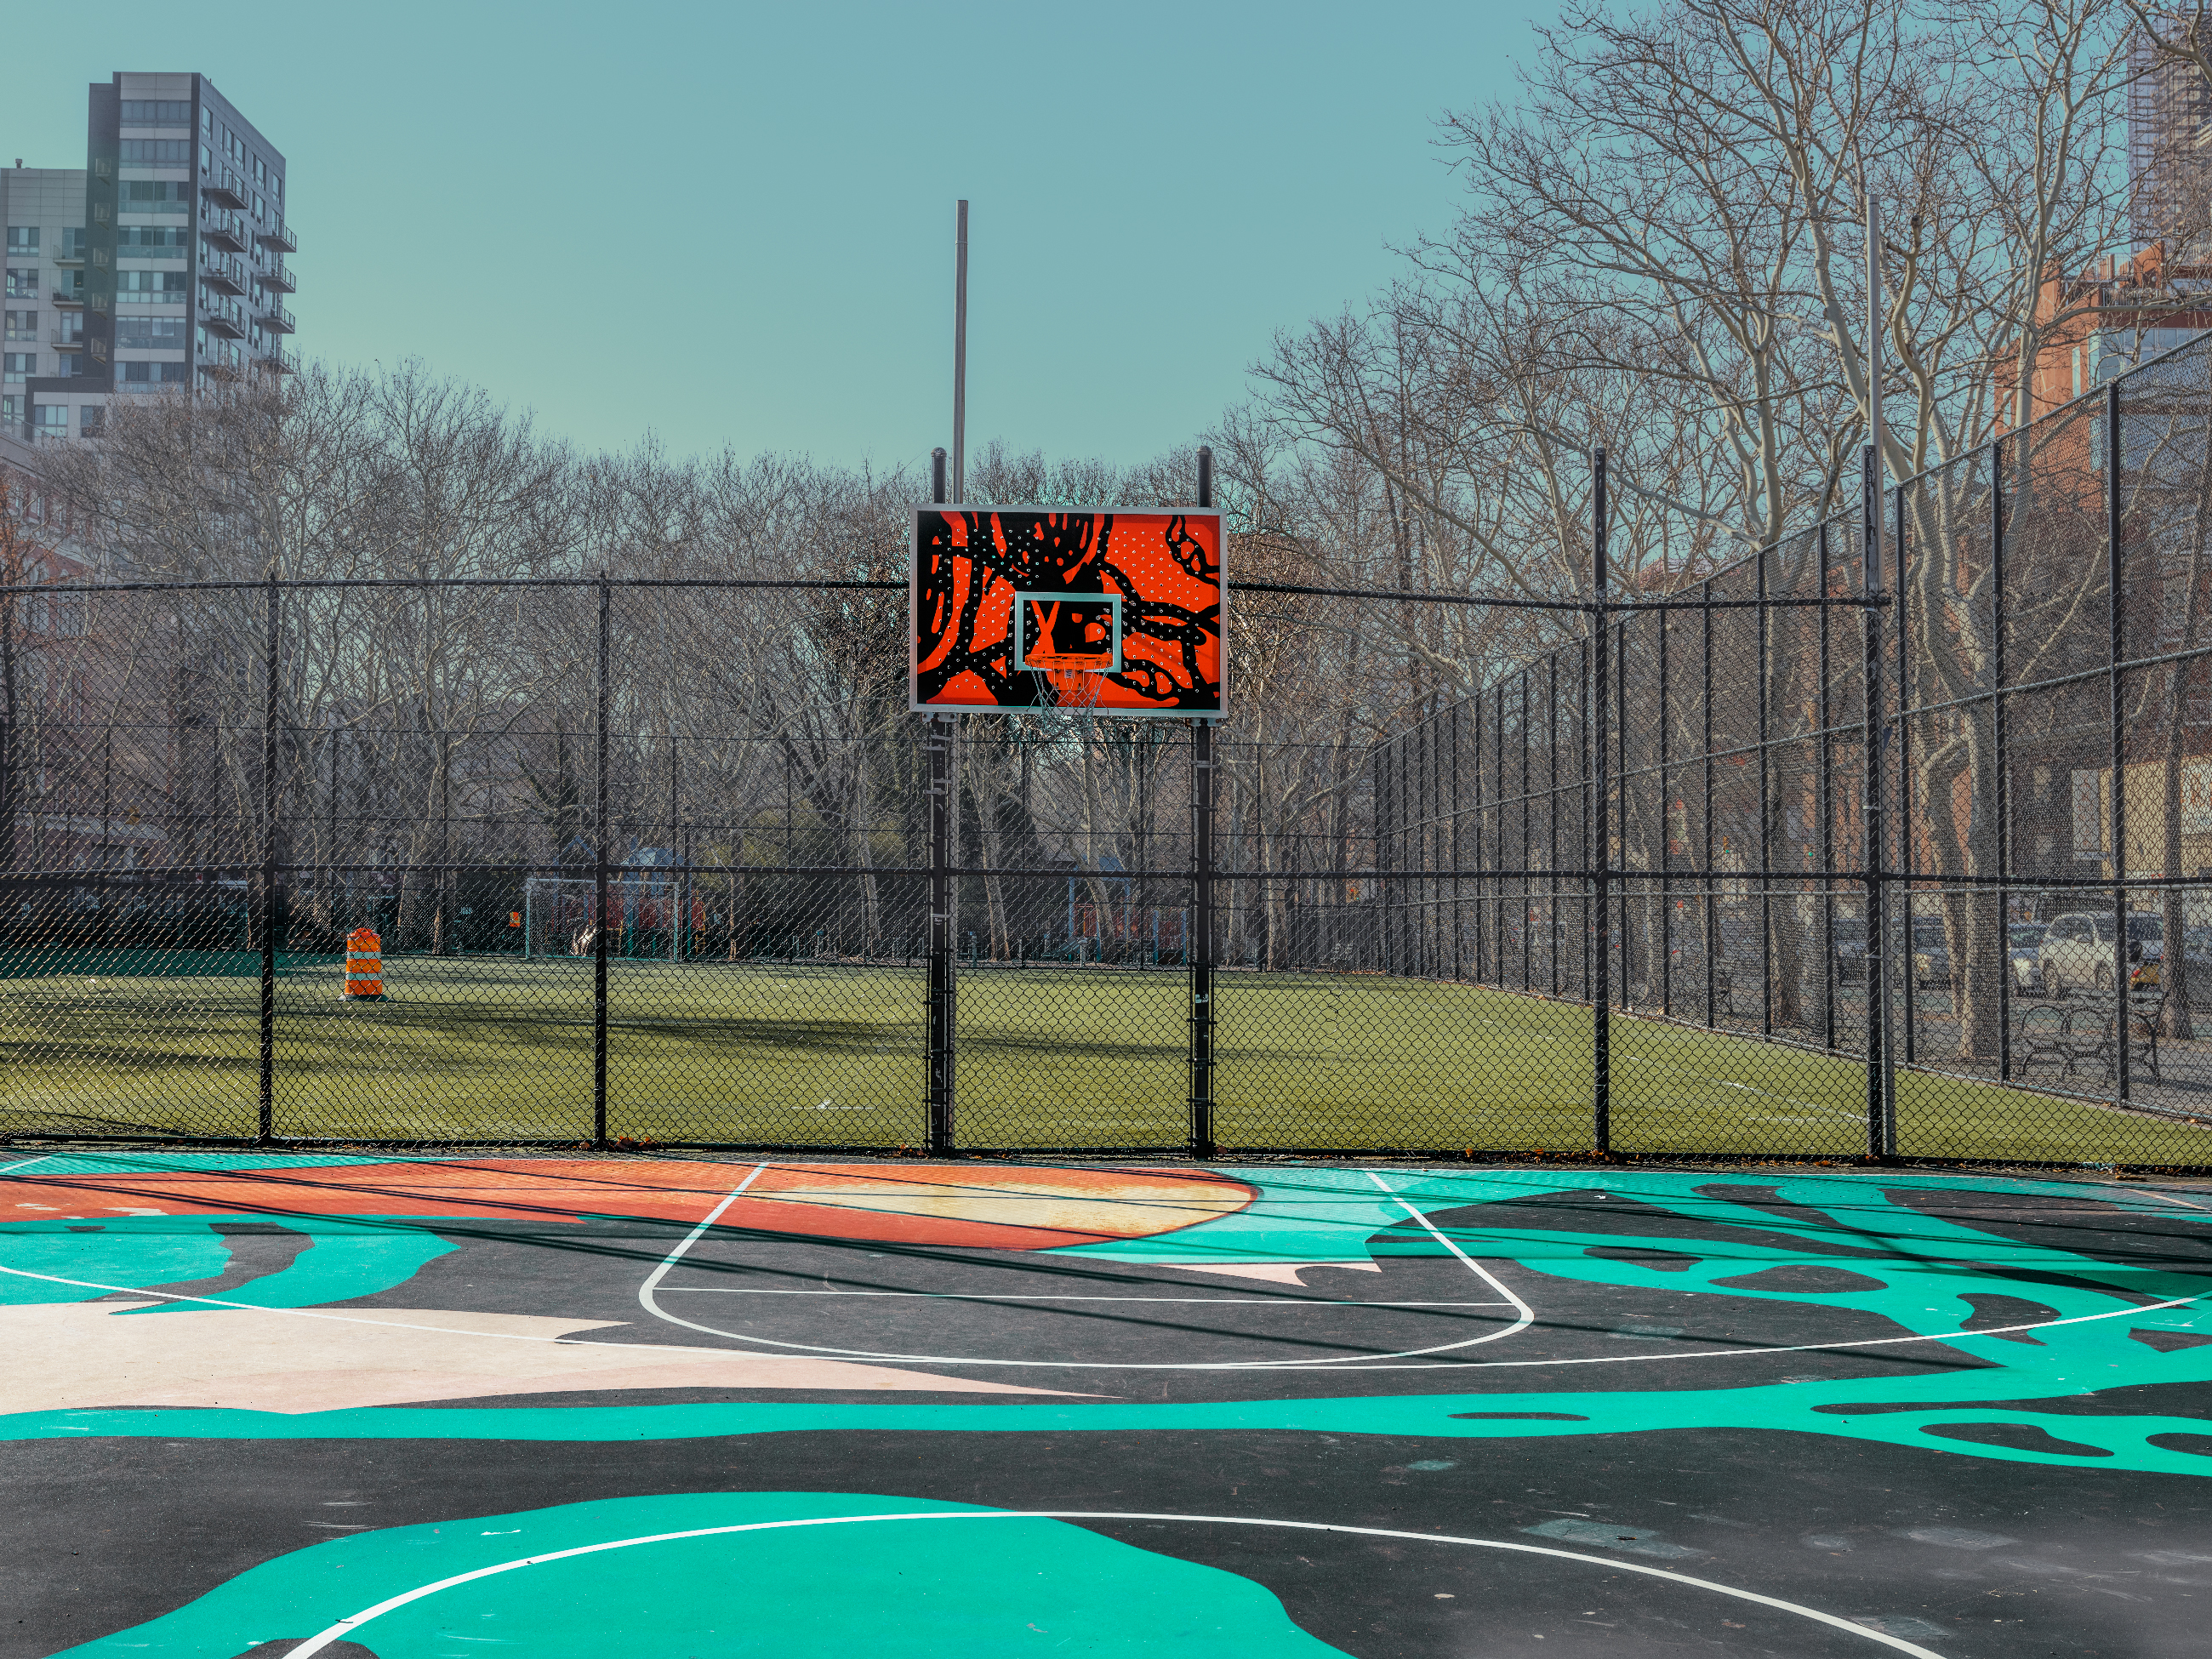 Charming Details of New York City Basketball Courts